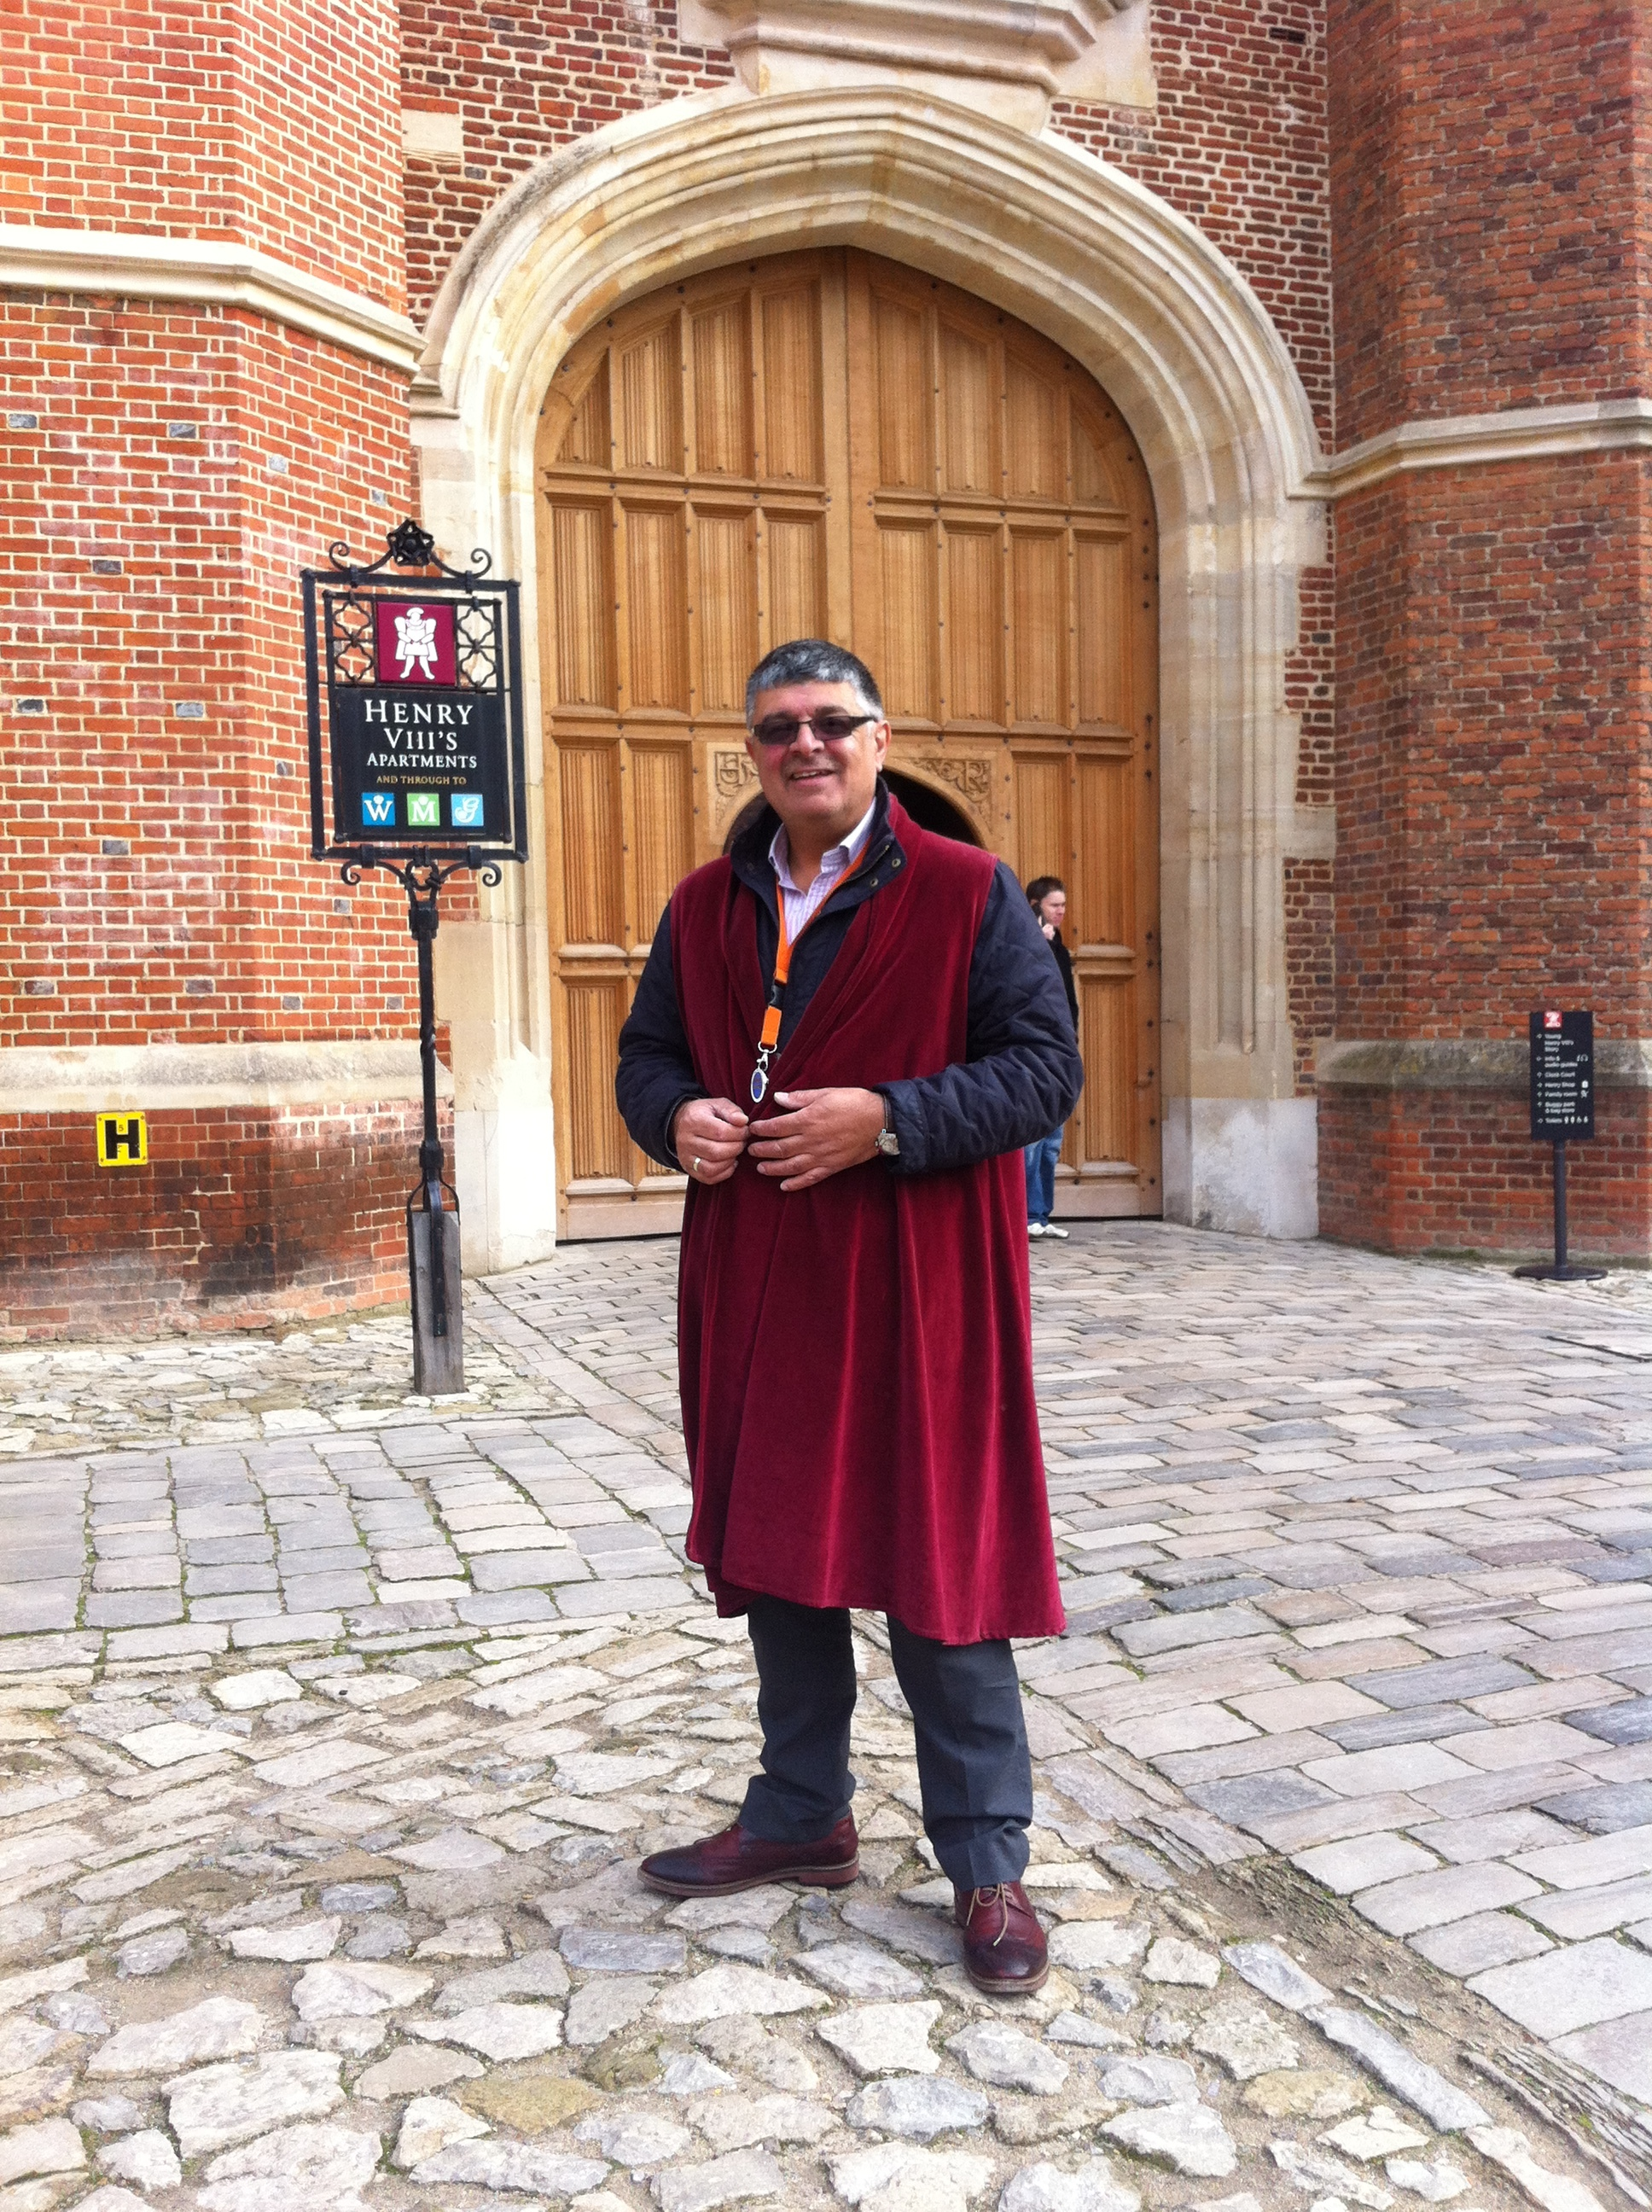 Your Guide at Hampton court